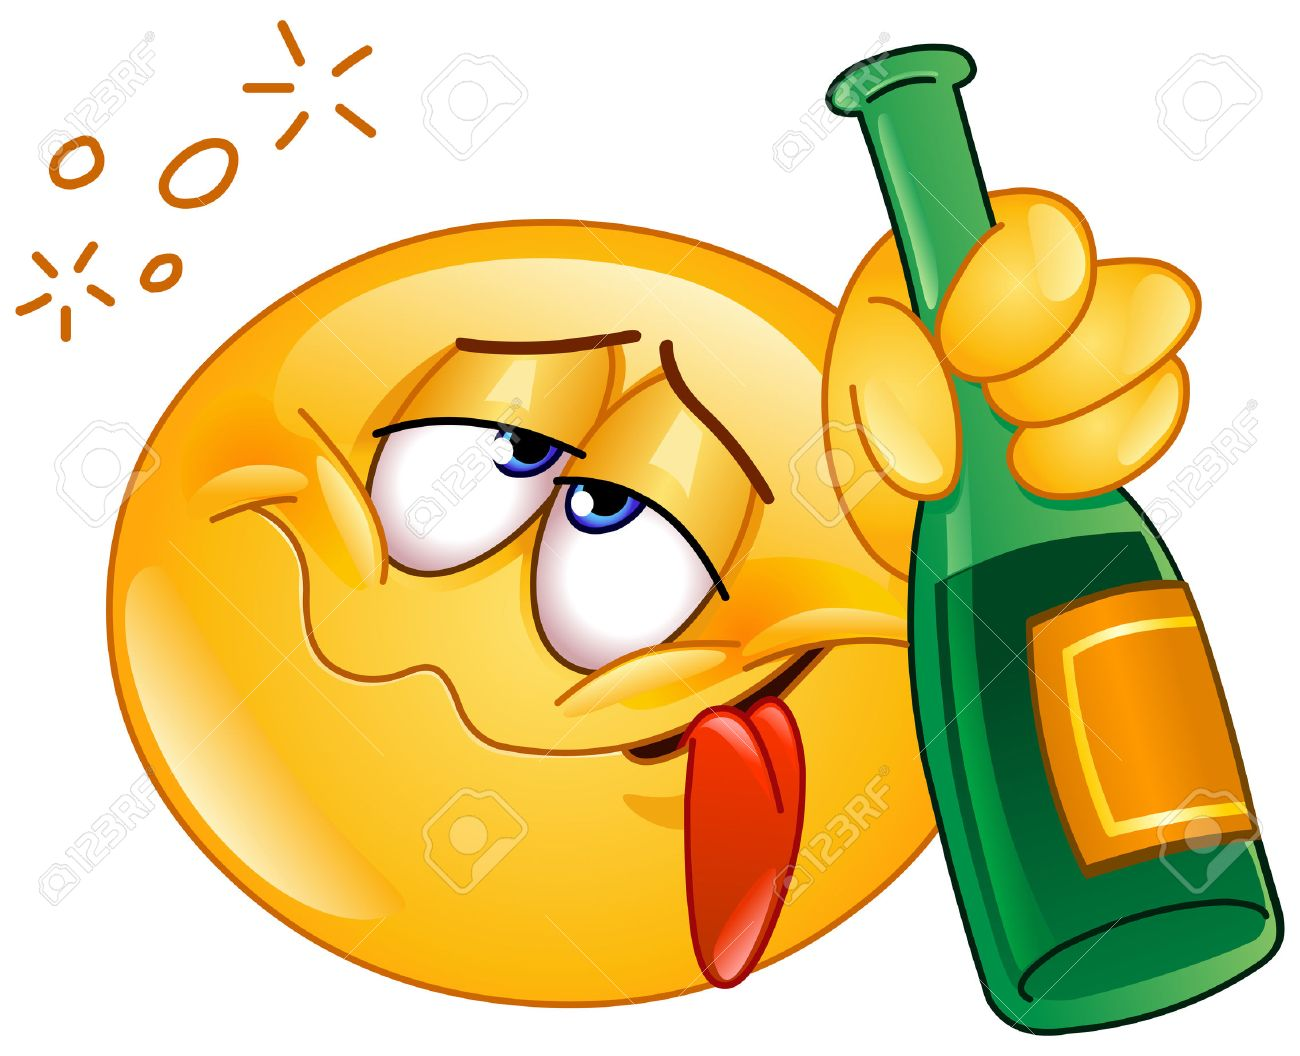 Drunk emoticon holding an alcoholic drink bottle - 35512034